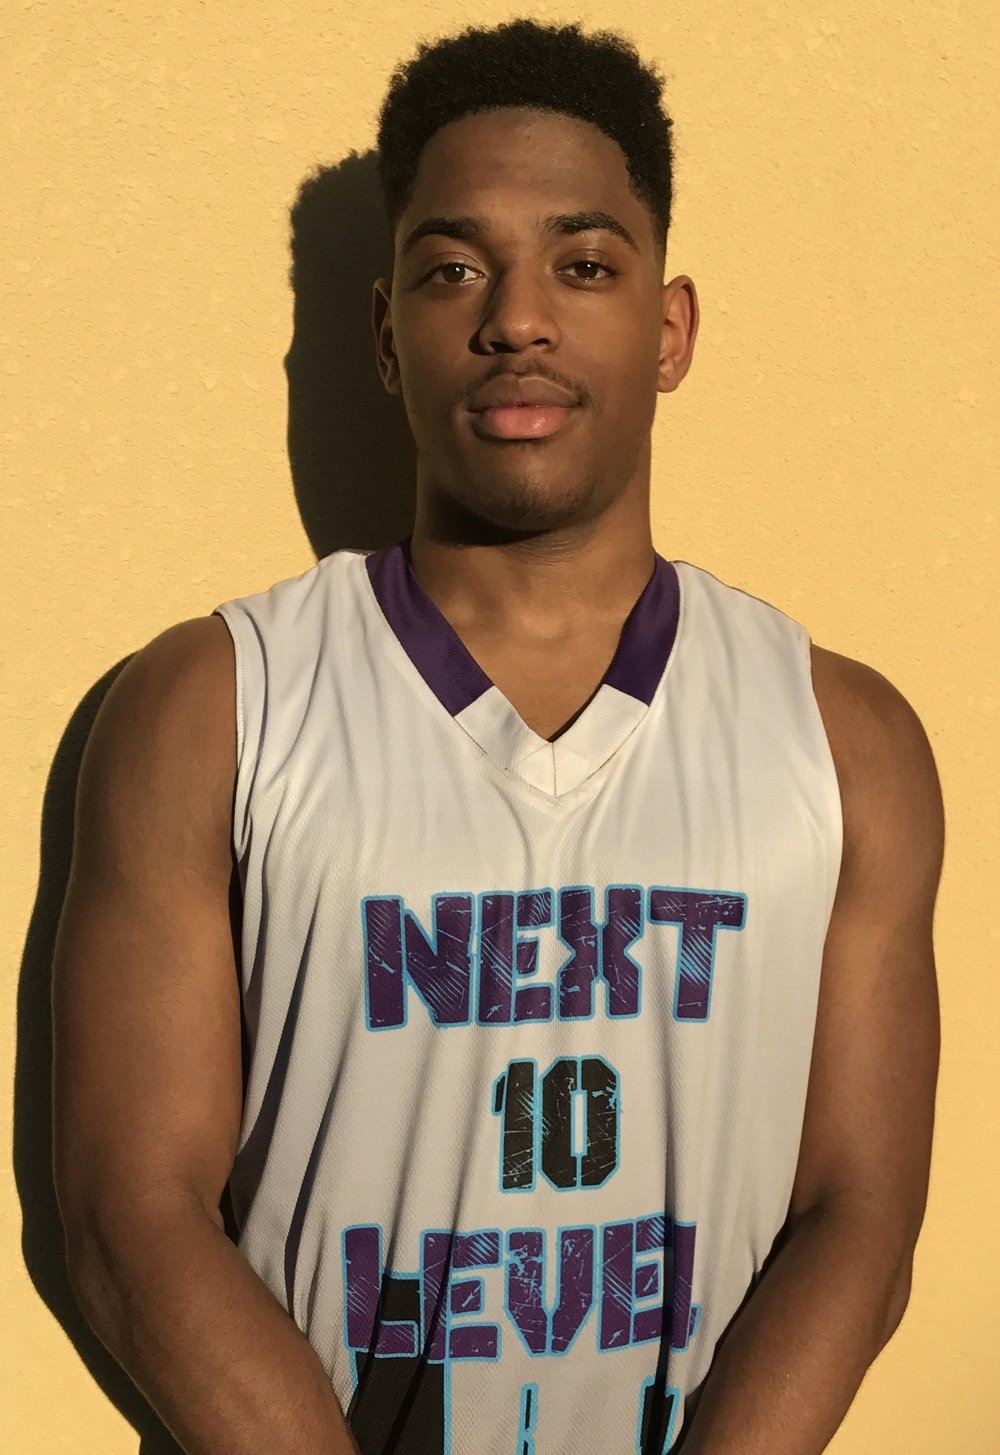 David Lowery #10    School: Elkins High School    Grade: 11th    Height: 5'10    Weight:182    Position: Guard    Top 5 Colleges: UT- Tyler, TLU, UMHB, UT- Arlington, West Texas A&M